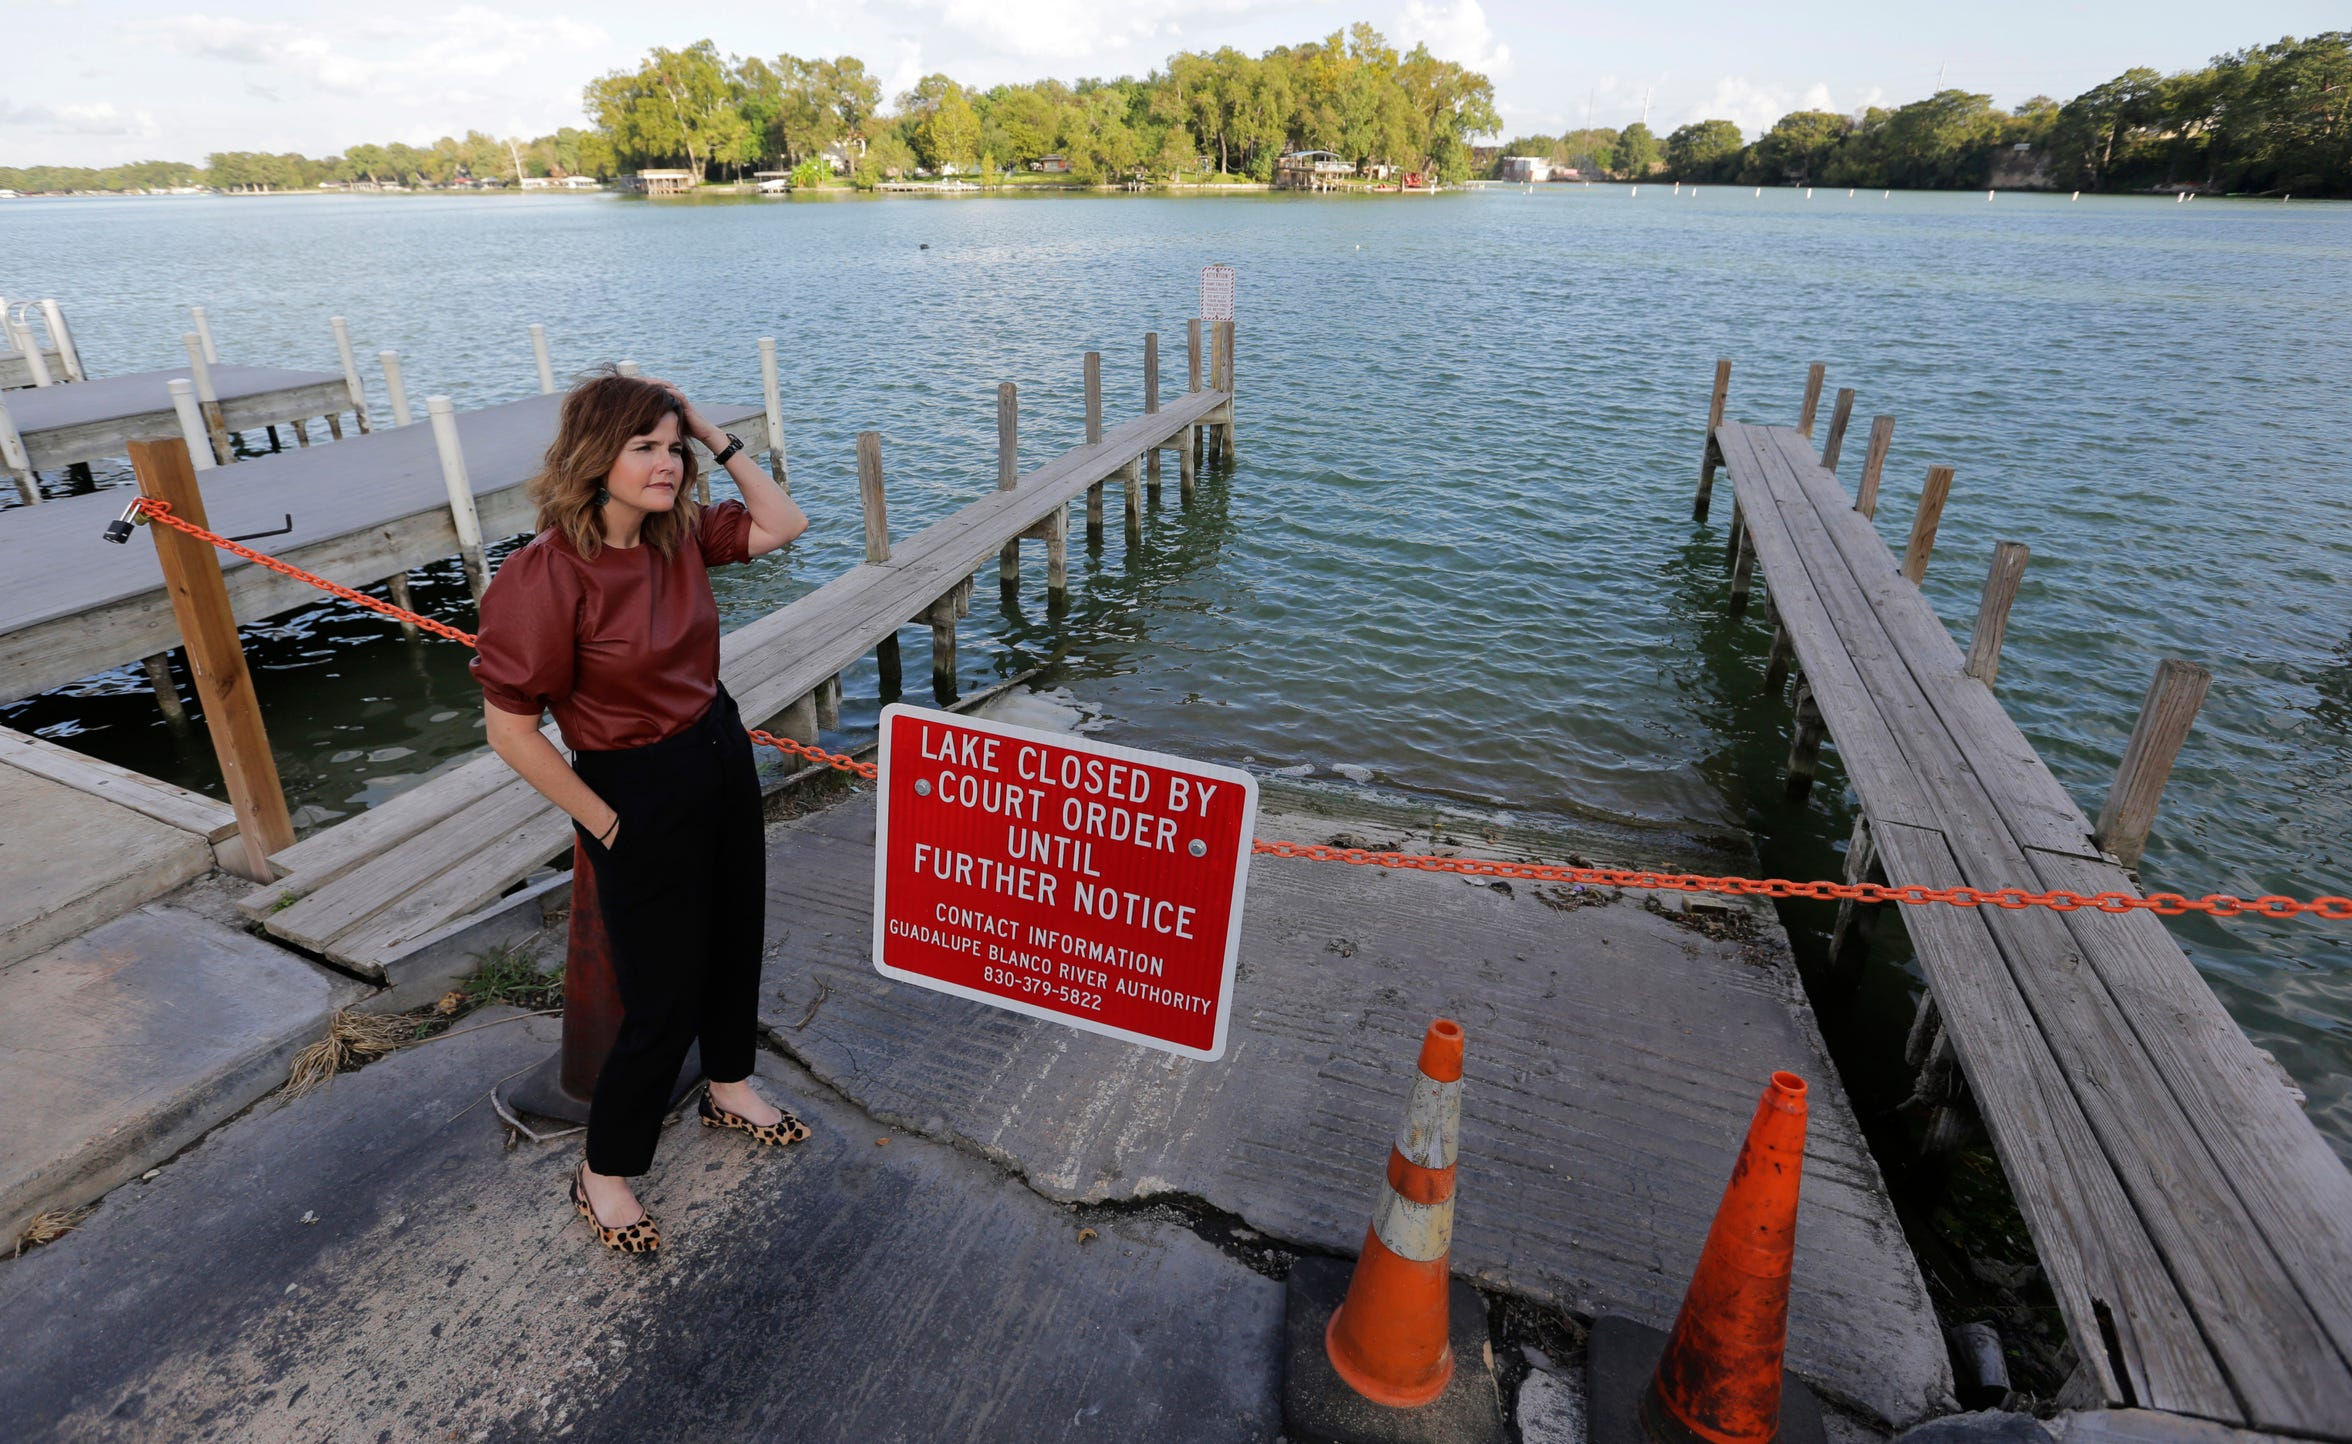 "Tess Coody-Anders, a university executive and homeowner near Lake McQueeney, one of the dams slated to be drained, stands near a sign showing the lake is closed, Sept. 30, 2019, in Lake McQueeney, Texas. ""This is something that communities and states all across the country are grappling with as we are reckoning with our aging infrastructure,"" said Coody-Anders. (AP Photo/Eric Gay)"